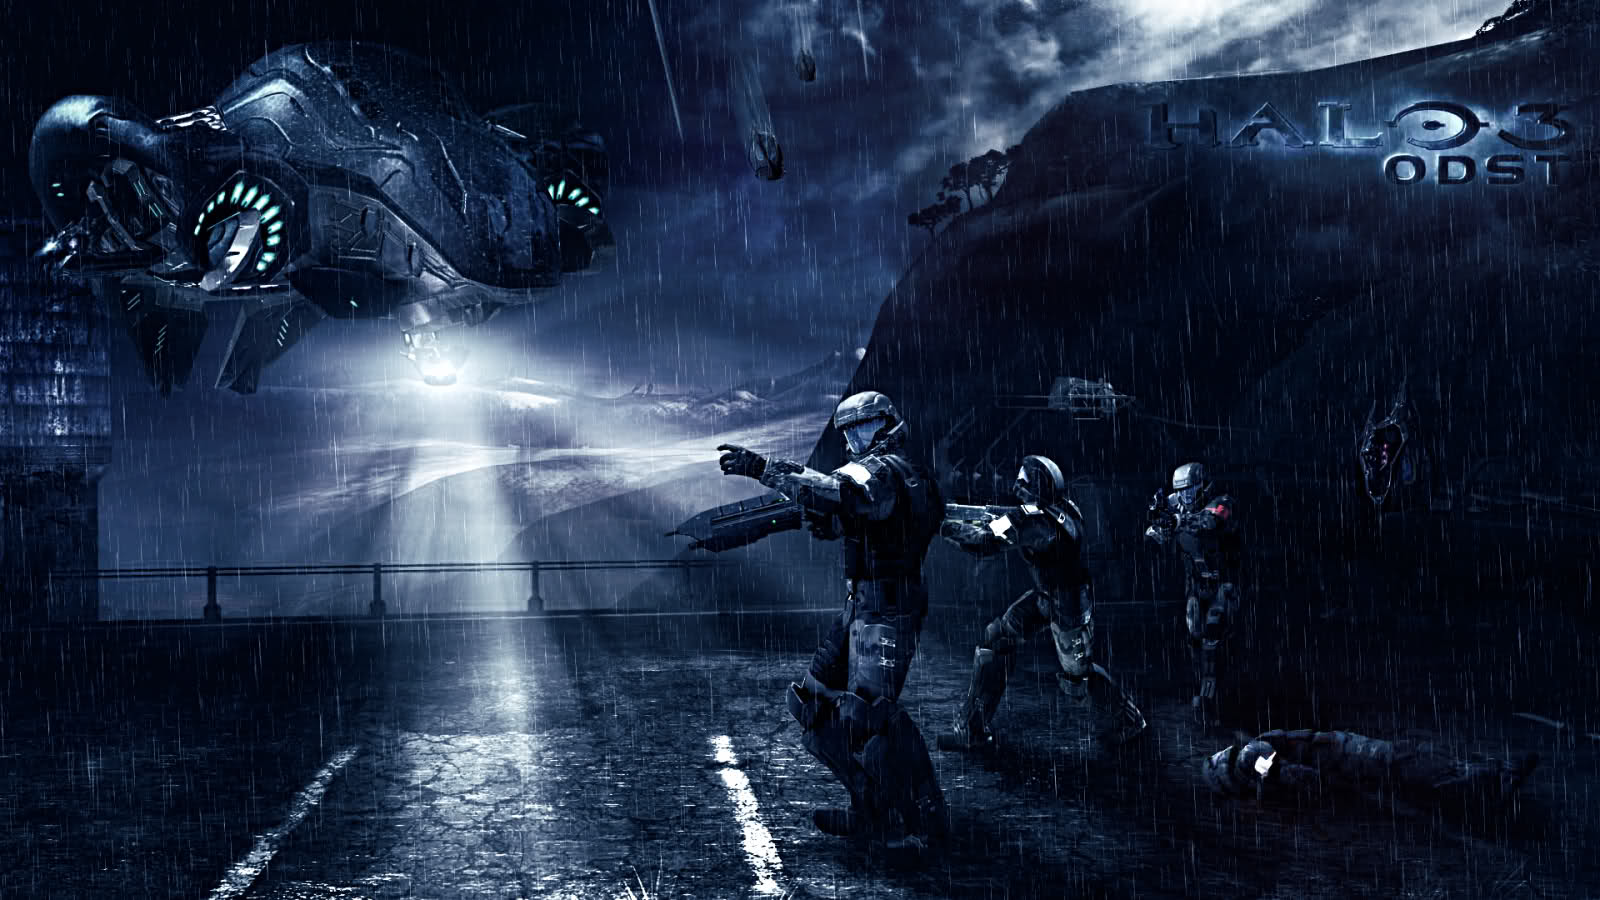 Halo 3 ODST Wallpapers Group (76+)